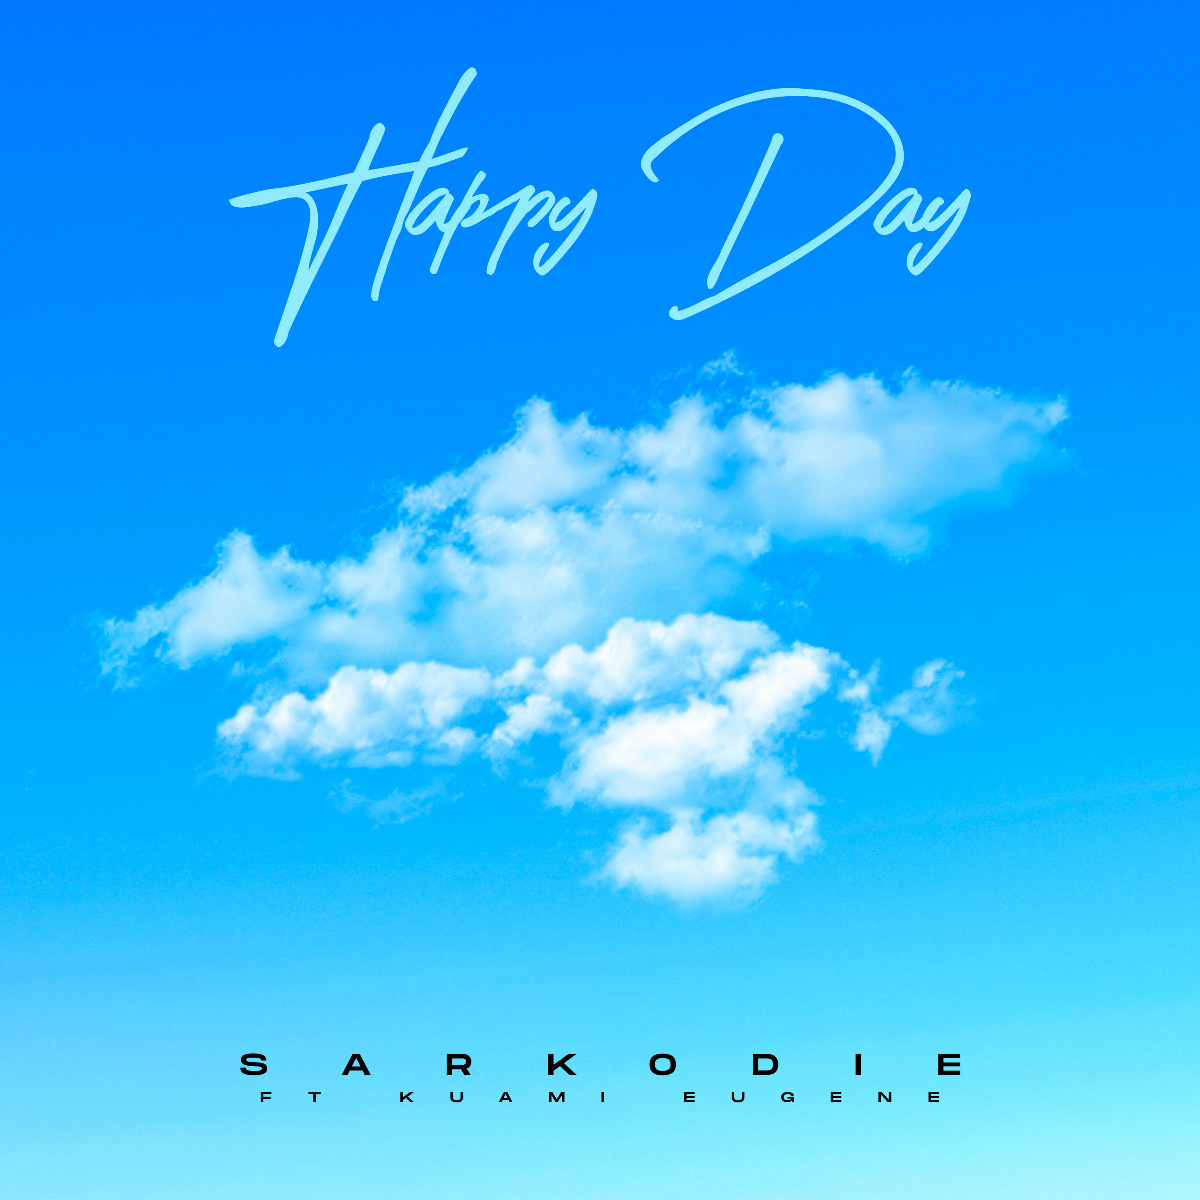 Happy Day by Sarkodie feat. Kuami Eugene